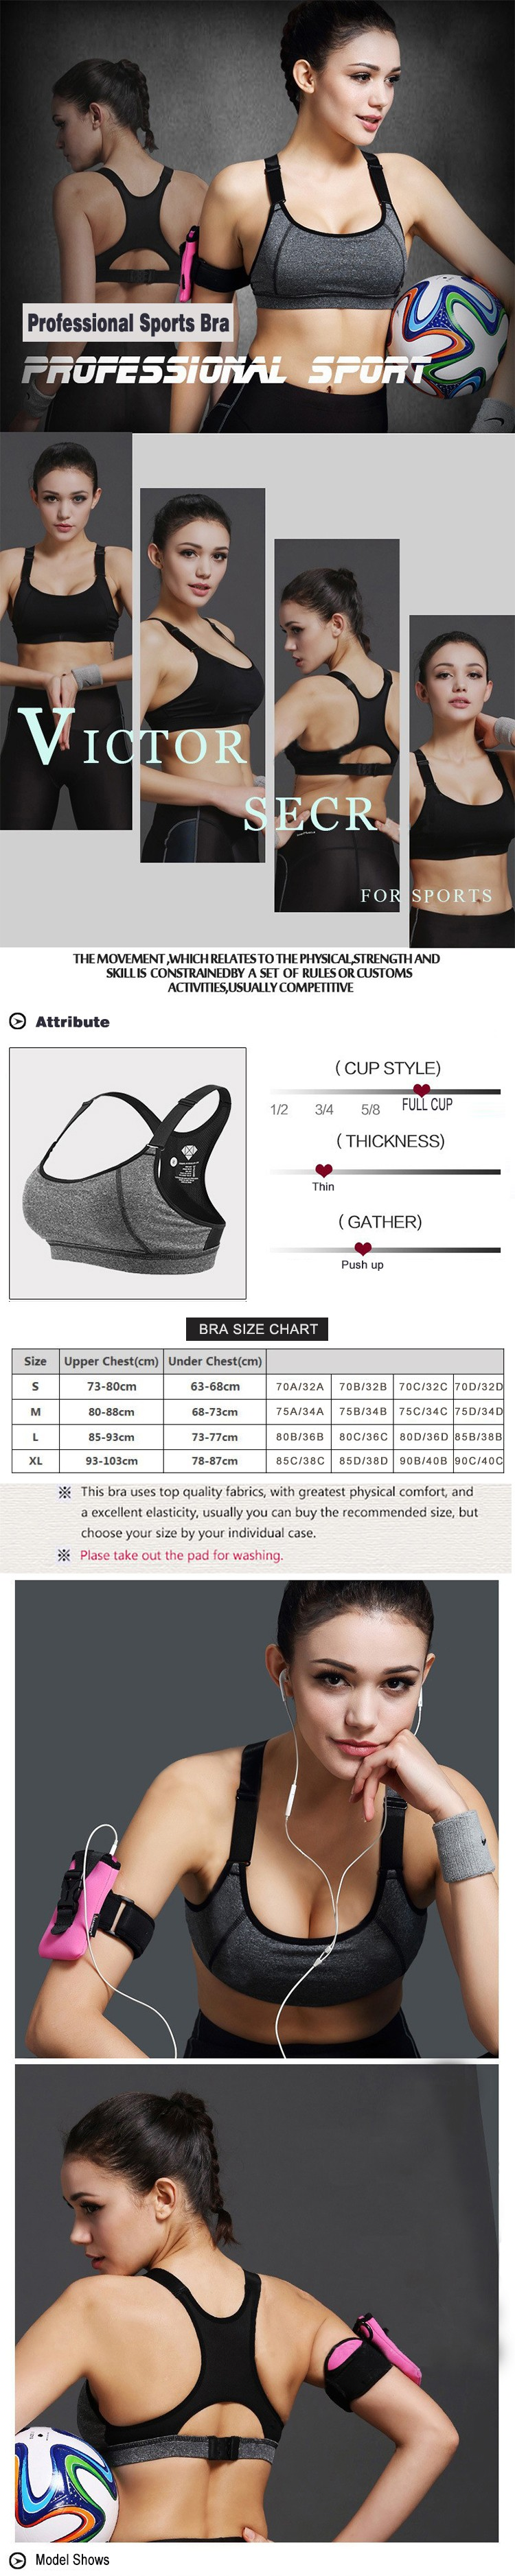 Codysale Sexy Bras Women Fitness Shakeproof Seamless Push Up Padded Bras Workout Quick-Dry Plus Size Underwear Sleeveless Tops 3